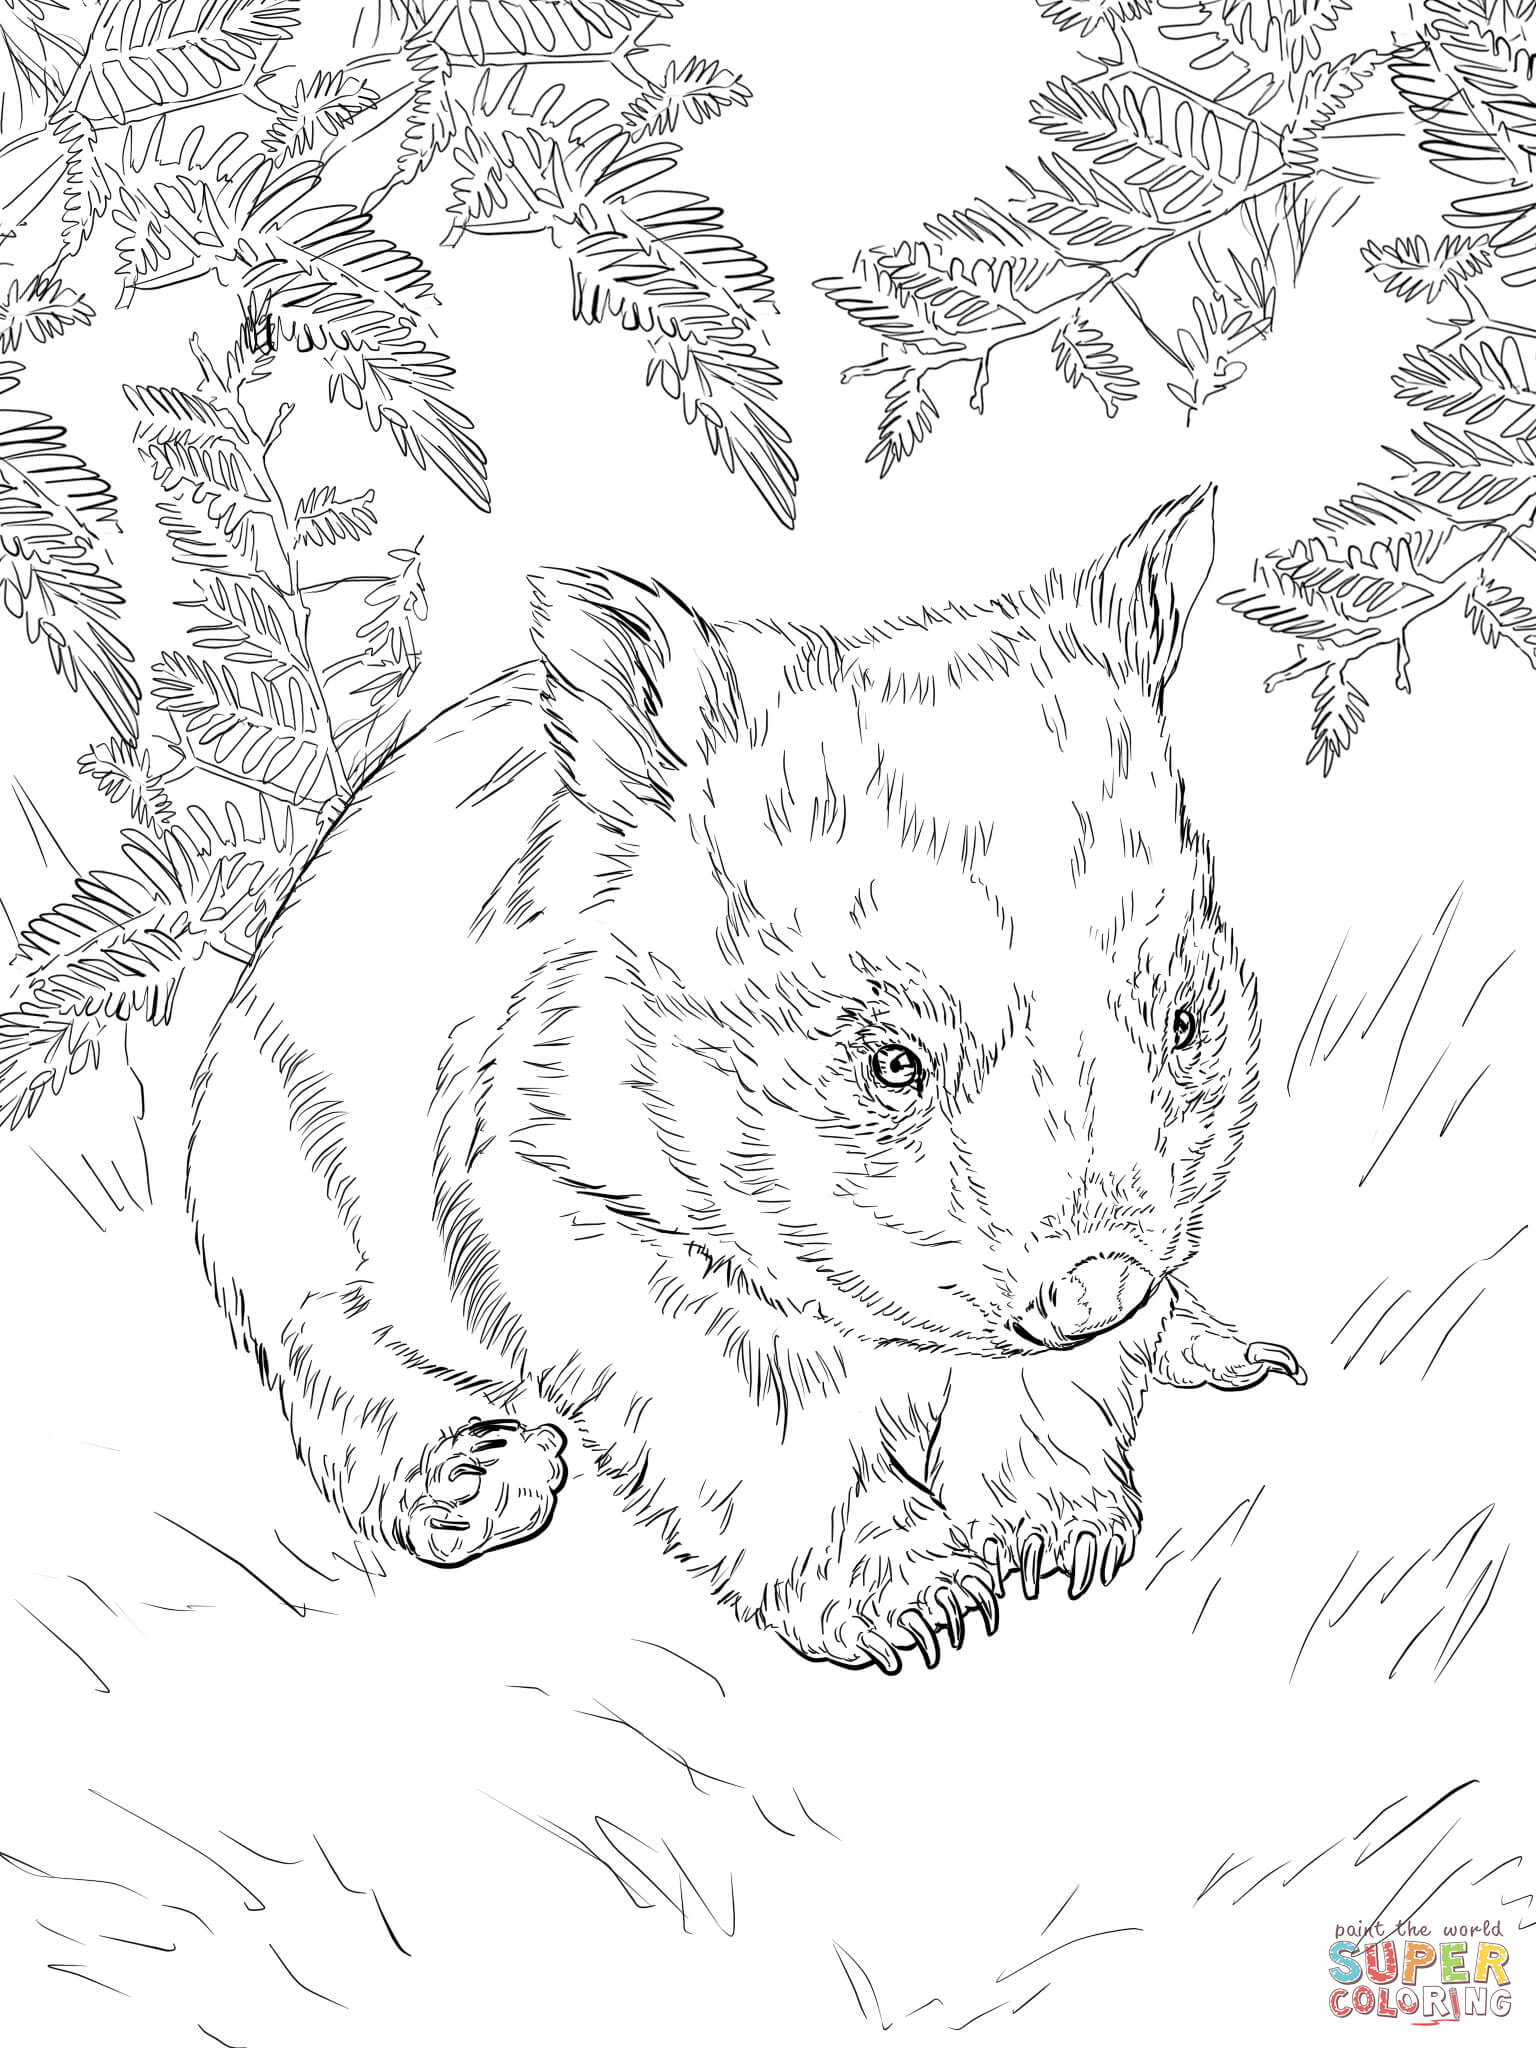 wombat colouring wombat coloring download wombat coloring for free 2019 wombat colouring